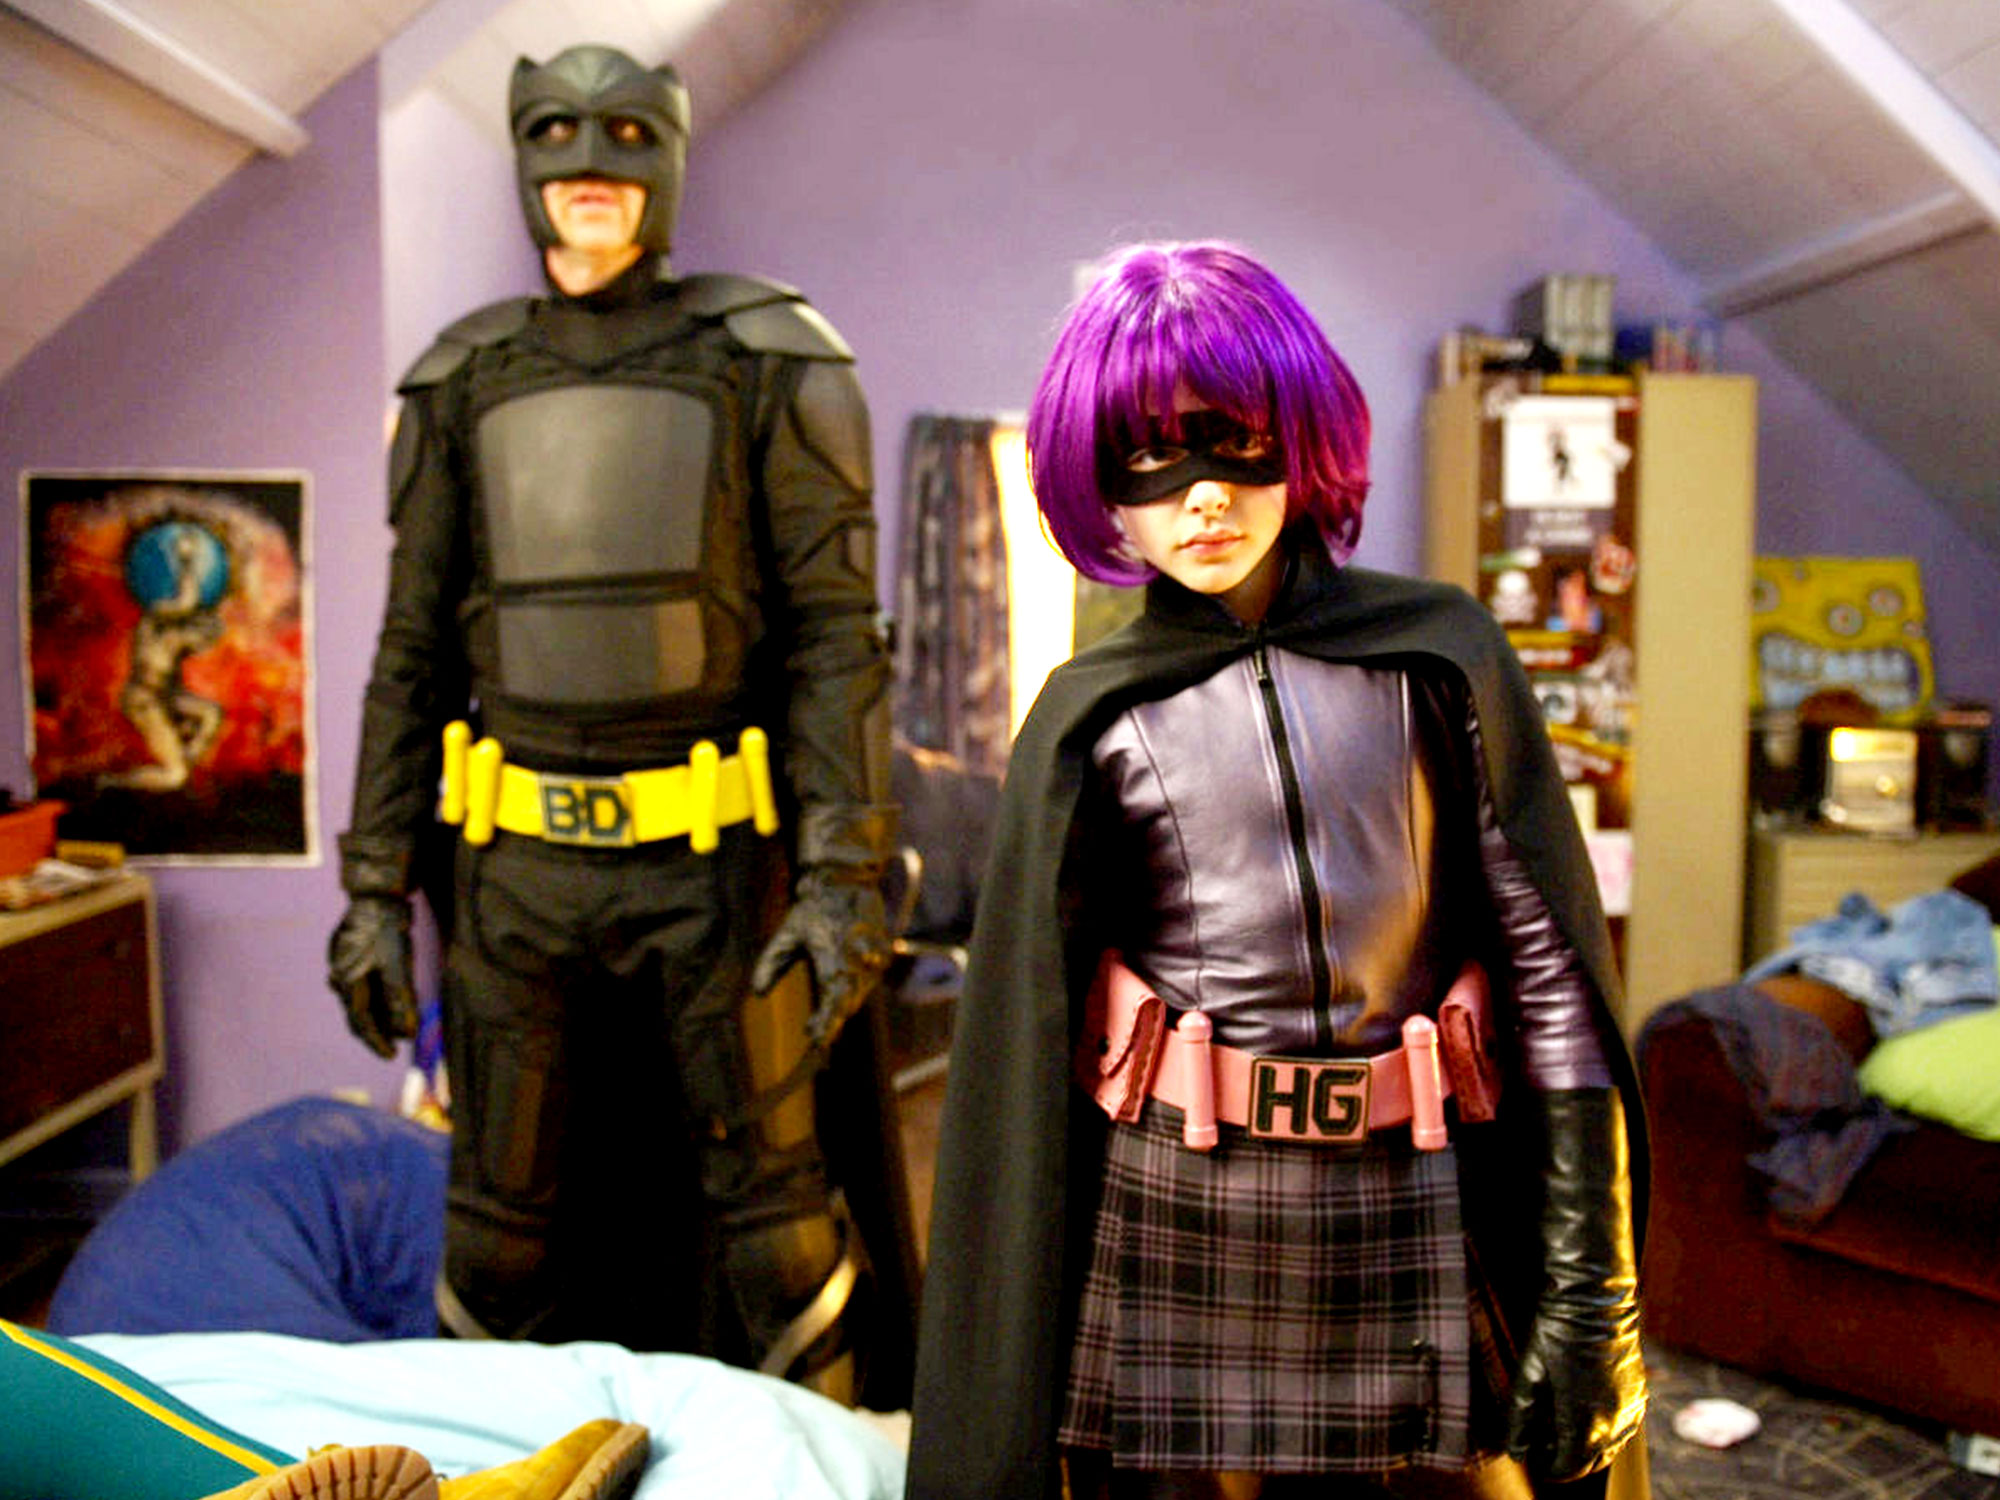 Hit Girl (Chloe Grace Moretz) and her father Big Daddy (Nicolas Cage) in Kick-Ass (2010)